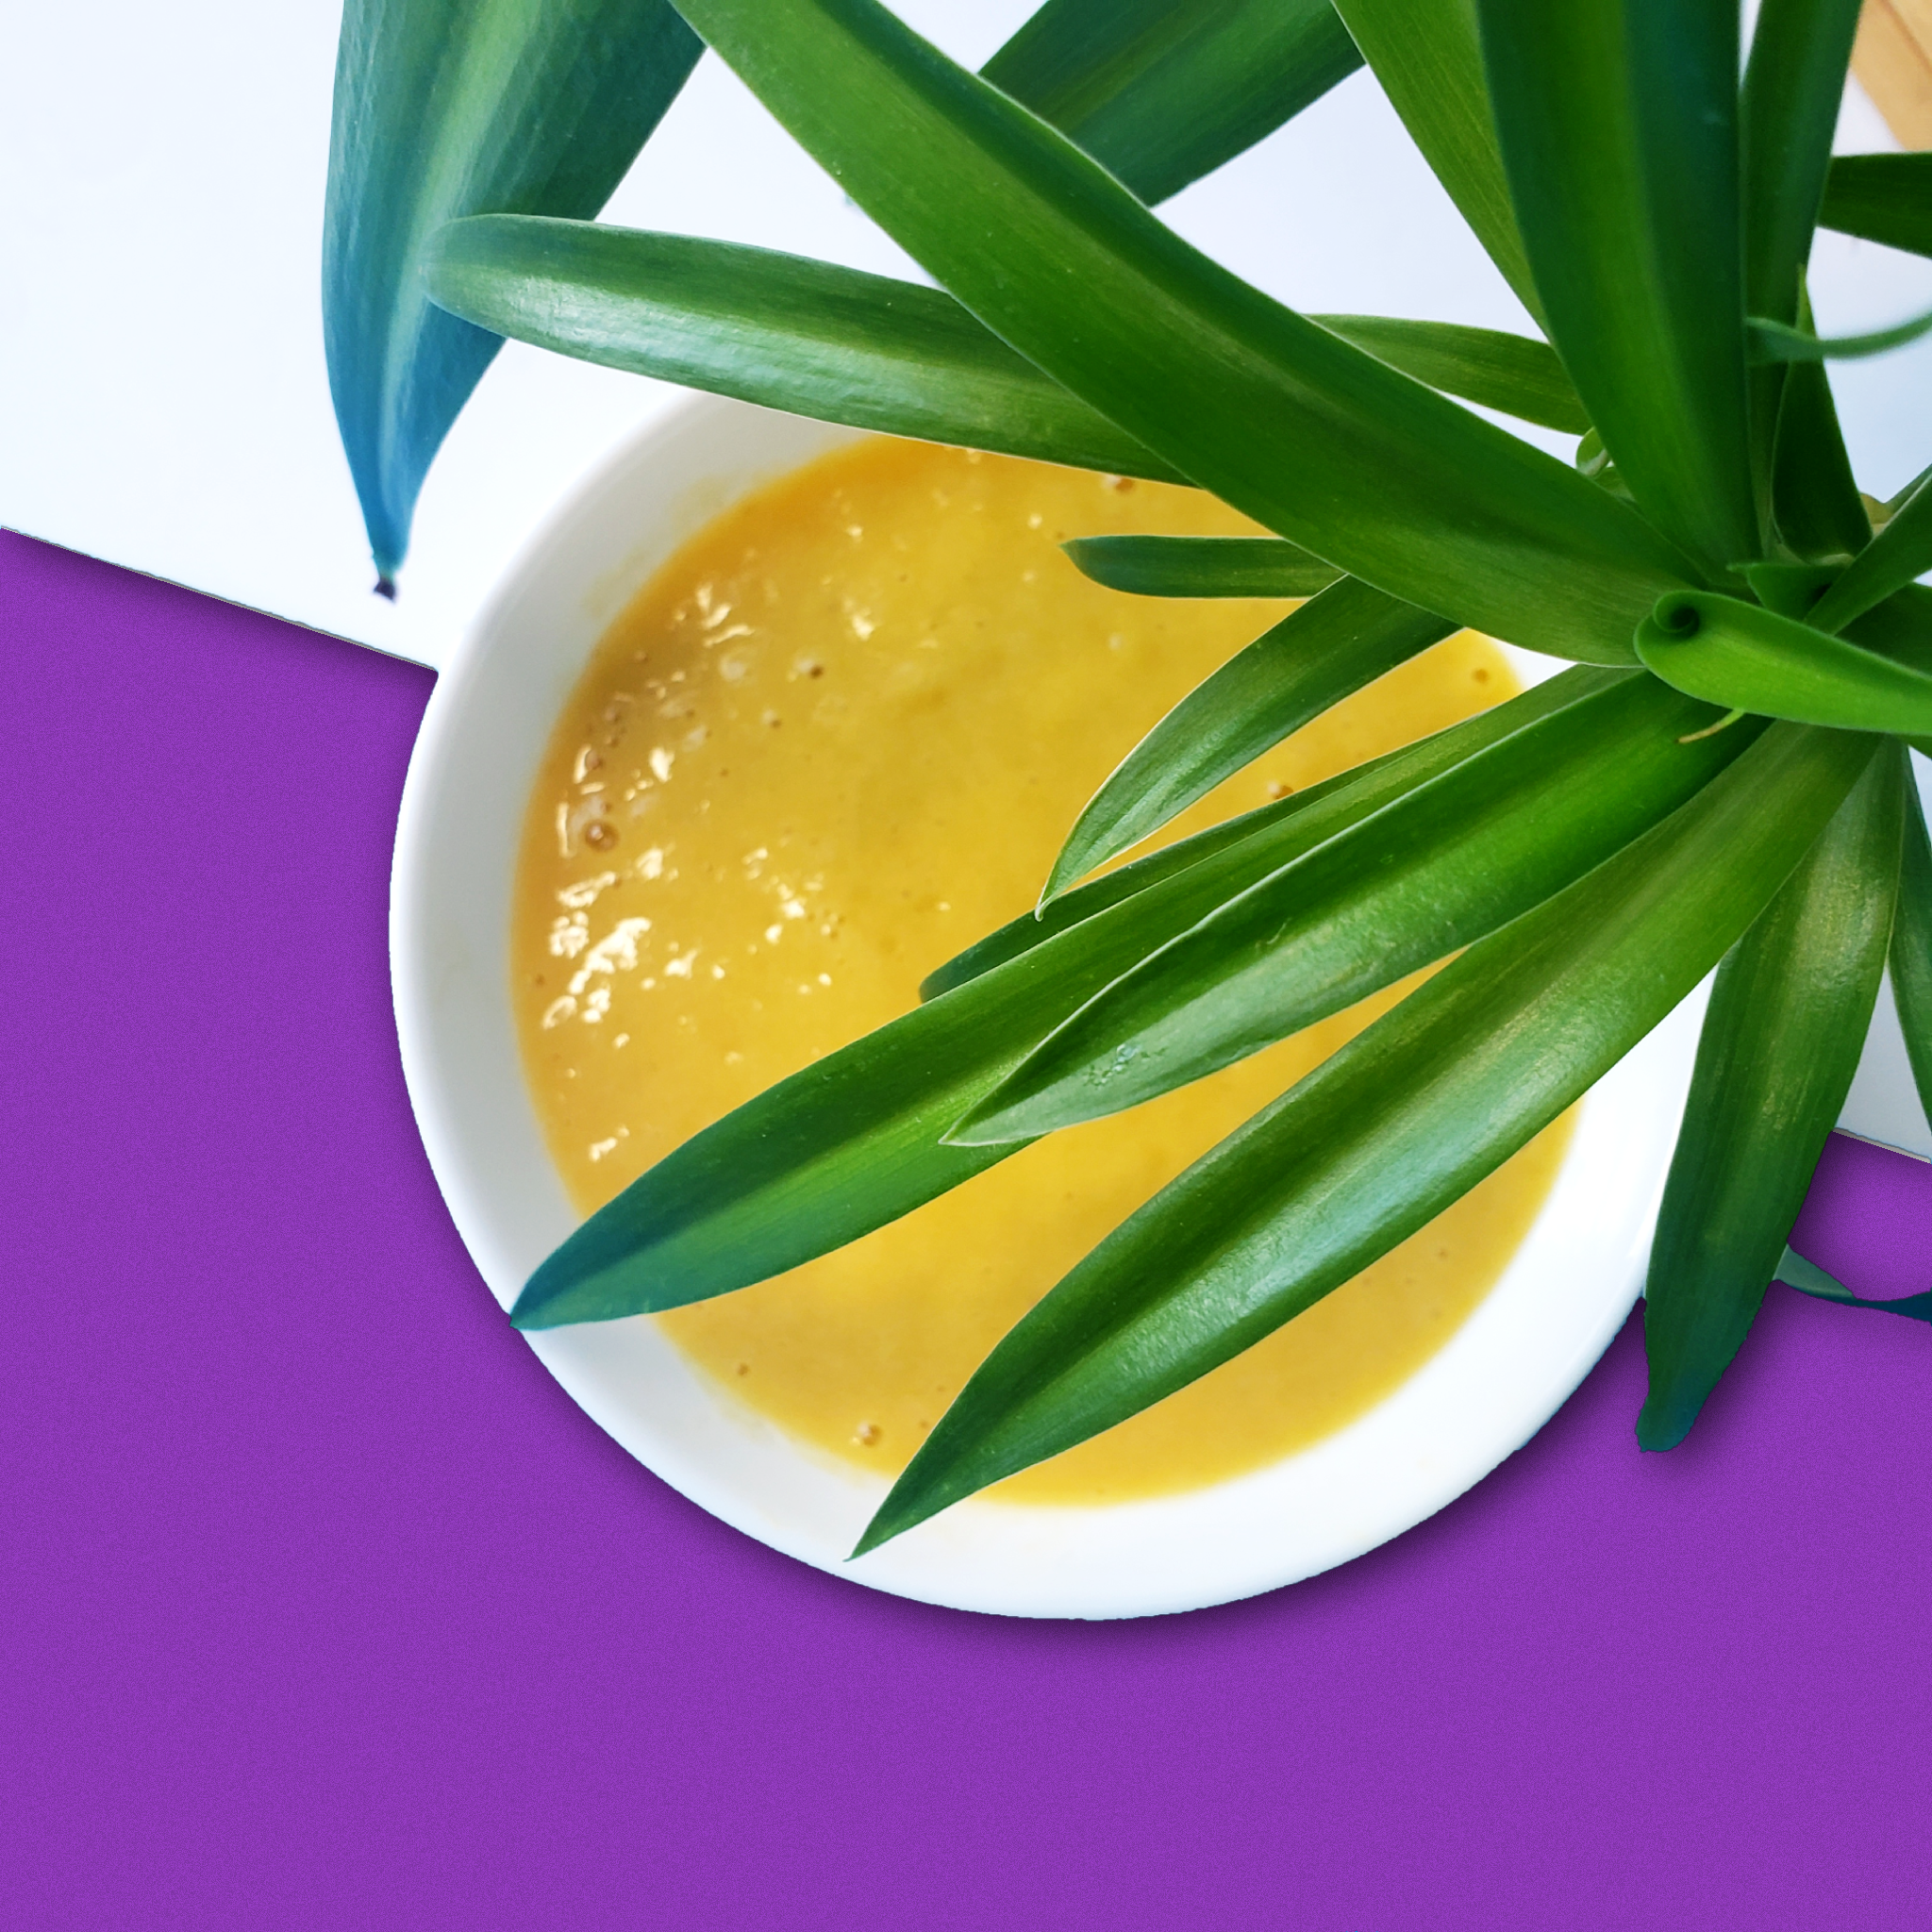 Wake up your immune system with this vibrant yellow smoothie! Delicious and packed with vitamins A & C. Made using Smoov's golden blend, pineapples, mangoes, a banana and milk.